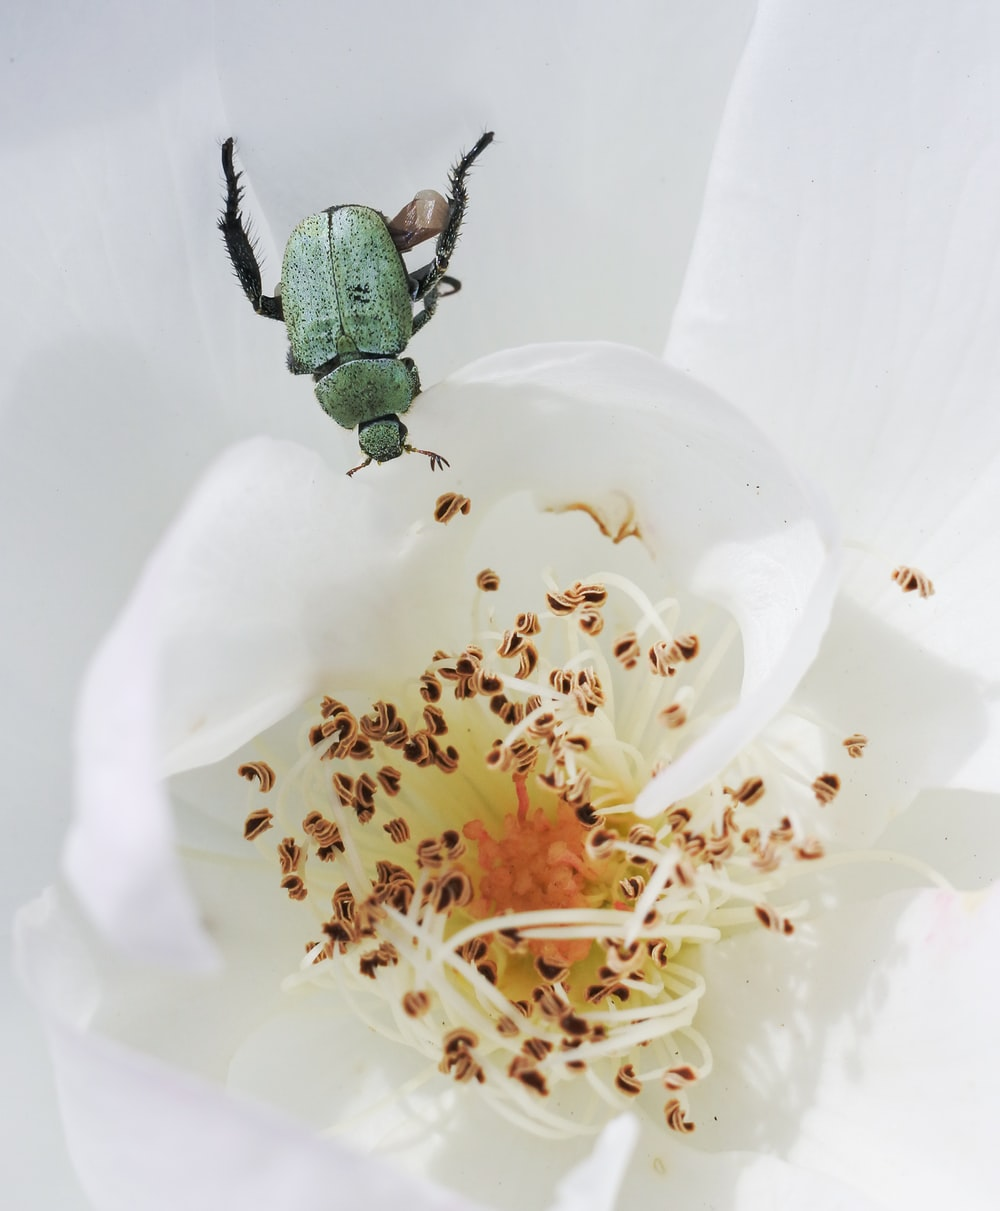 close up photo of white broad petaled flower with green bug